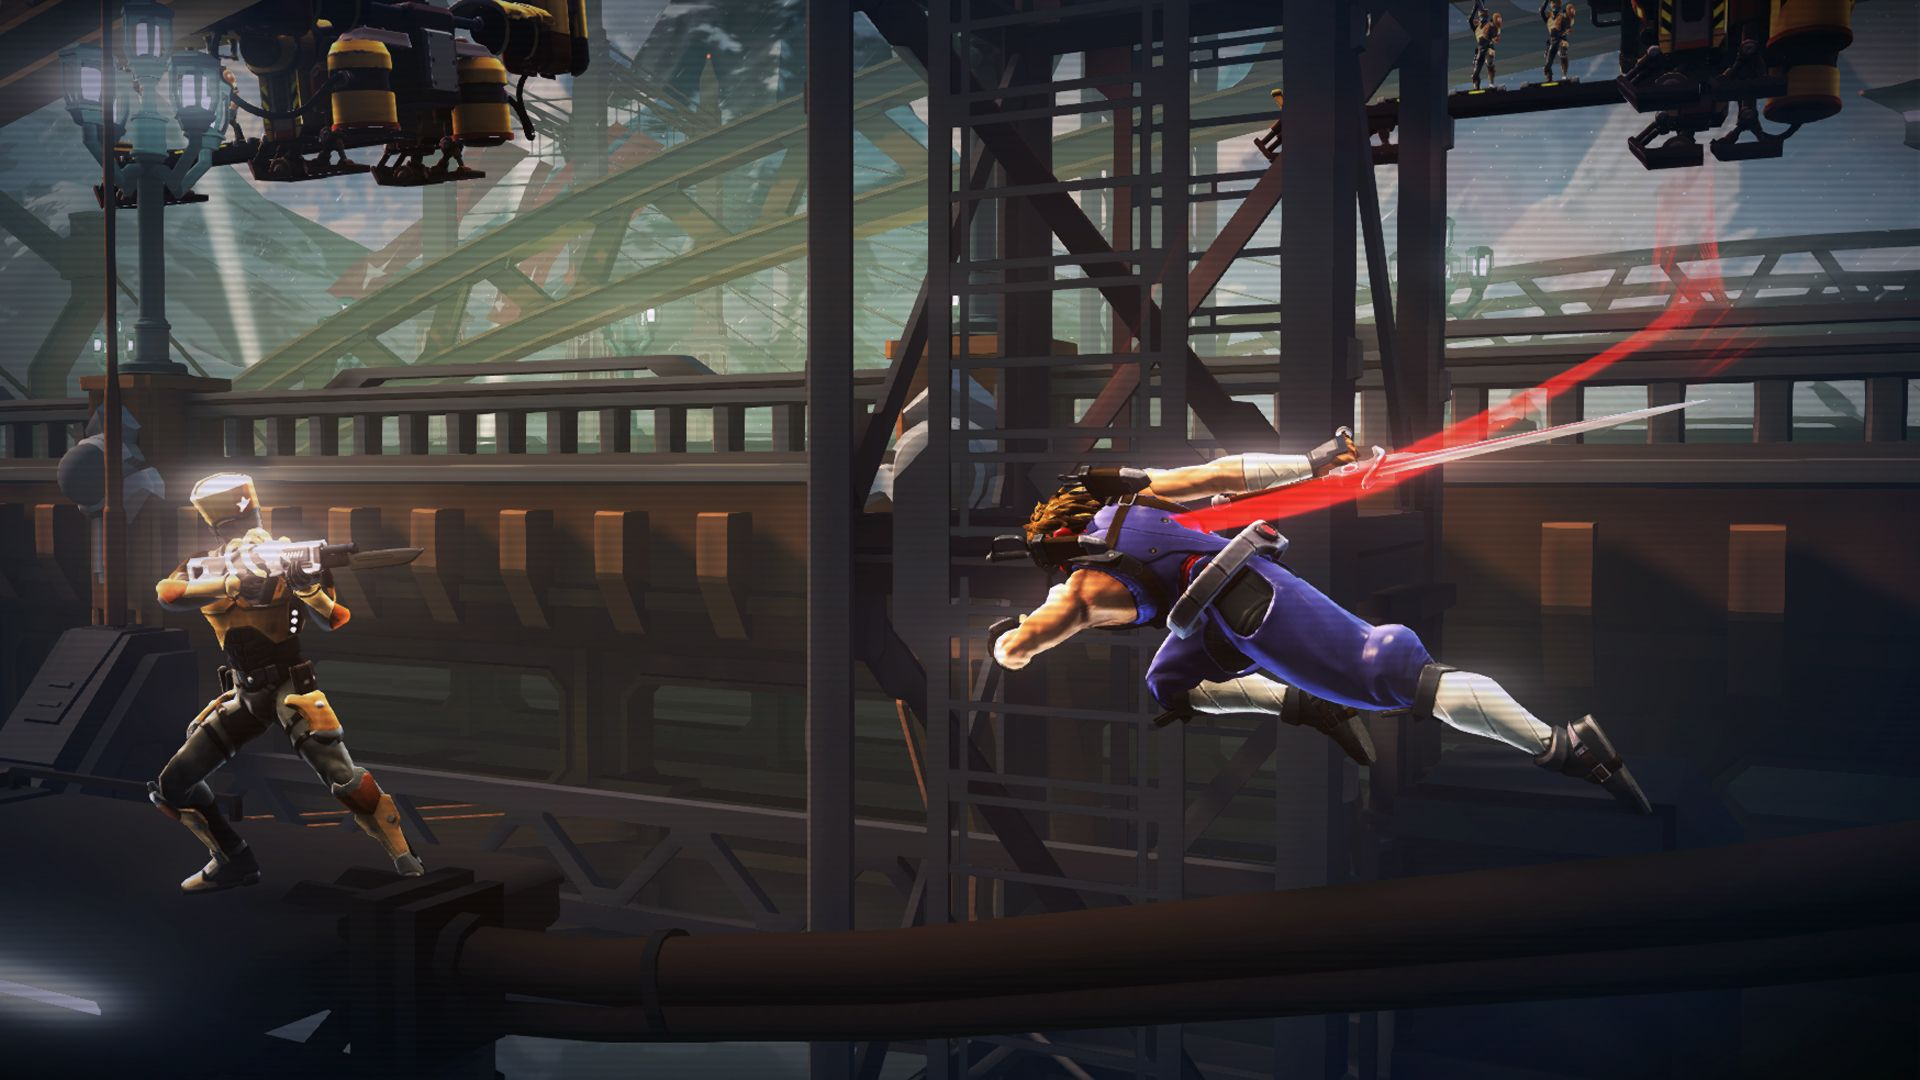 Strider (PS4) – actually he never strides anywhere, he just runs...